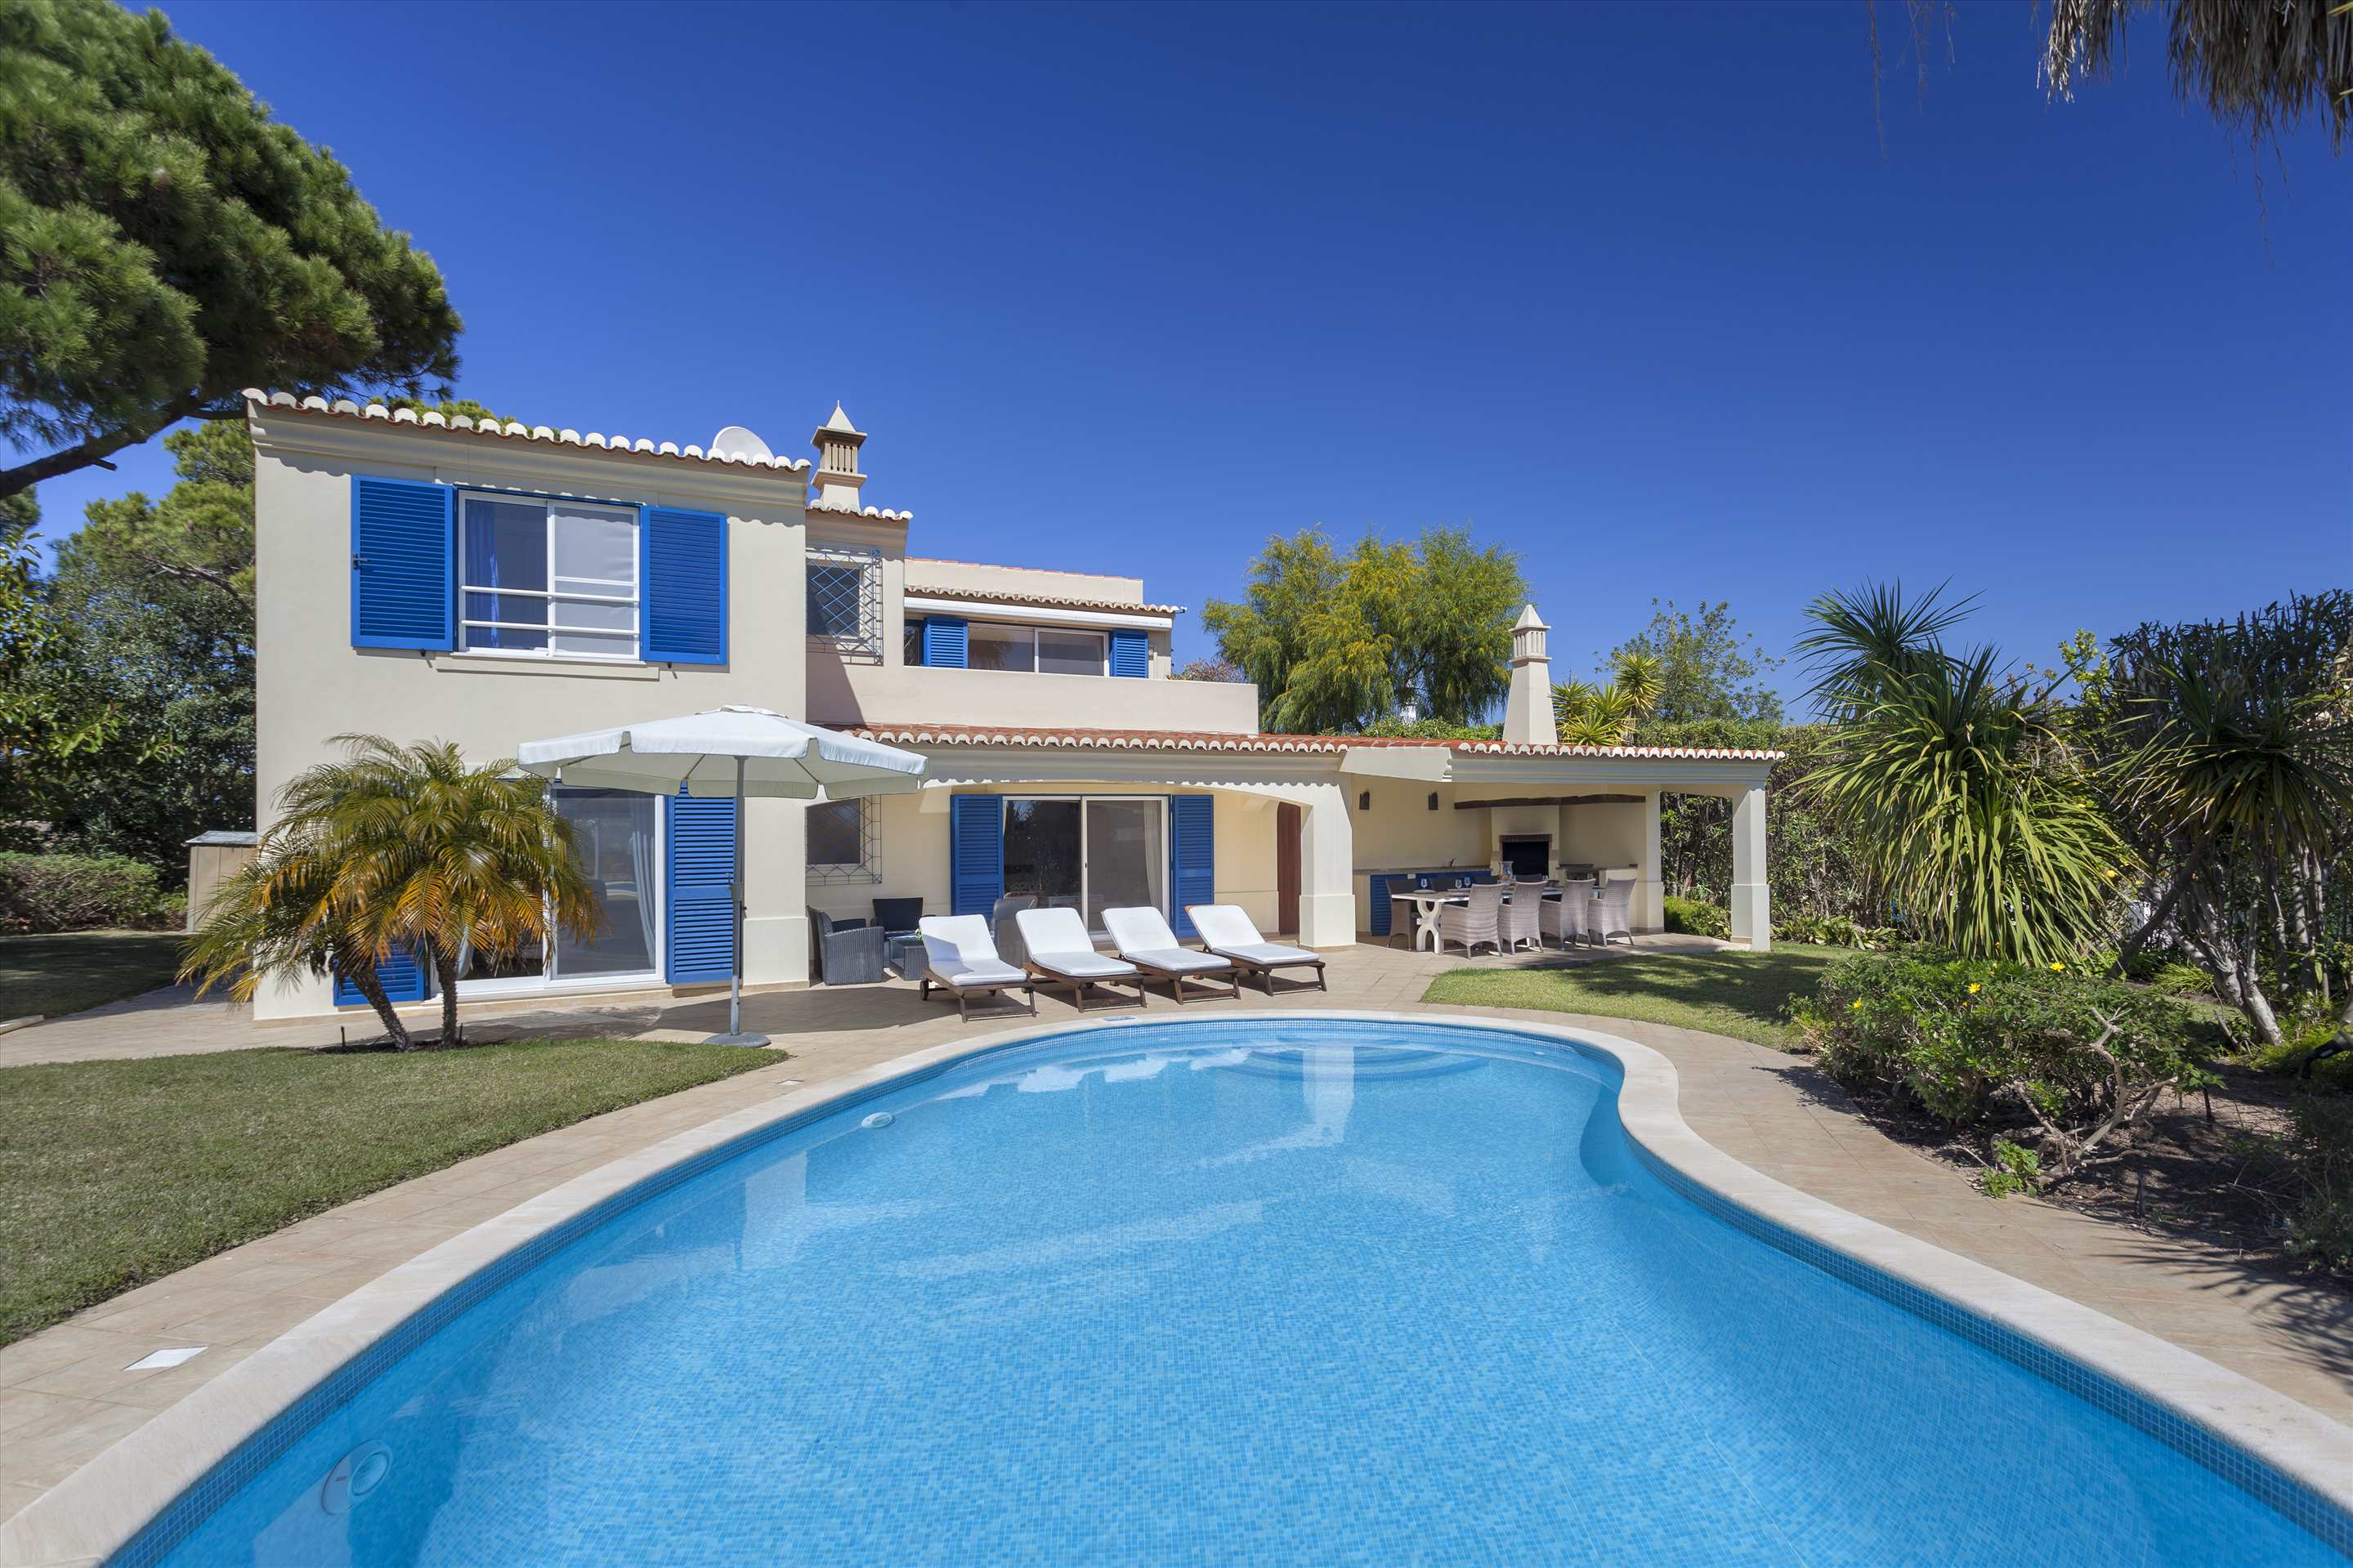 Villa Longa, 4 bedroom villa in Vale do Lobo, Algarve